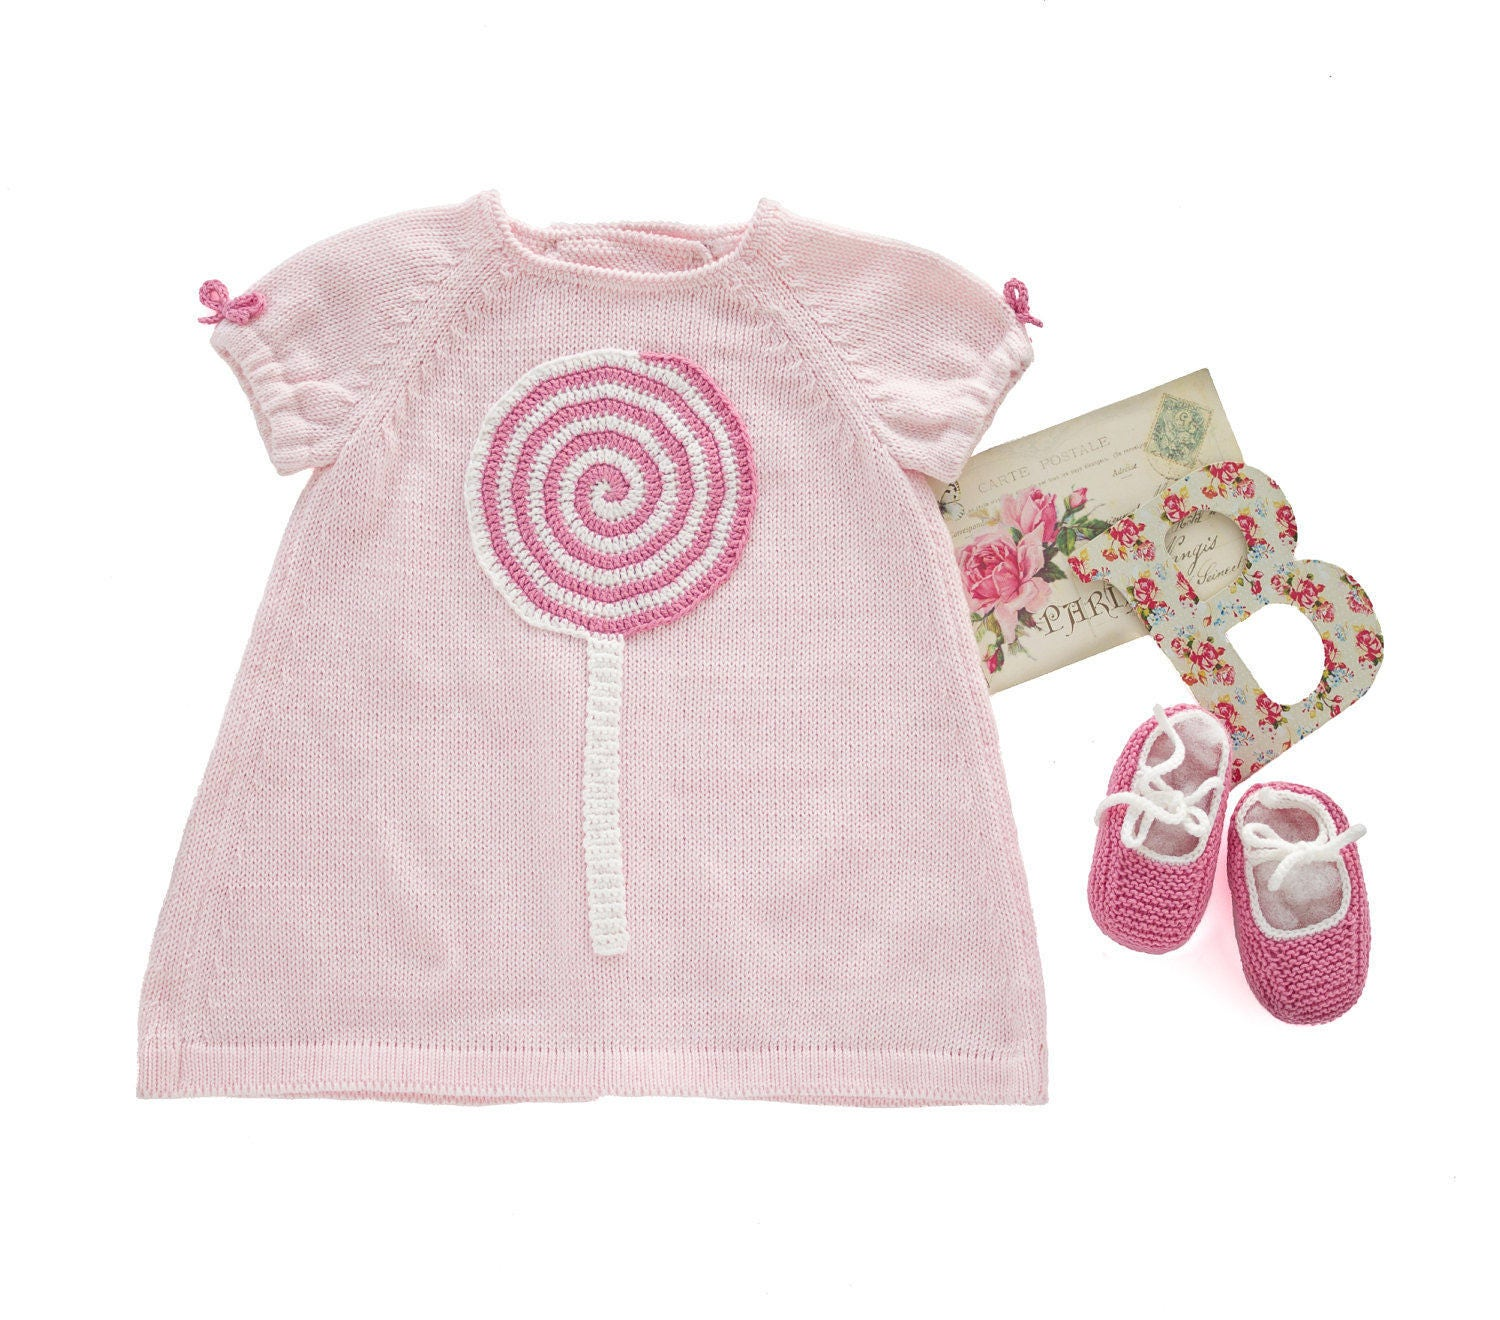 Knit baby dress set baby dress outfit home ing dress crib